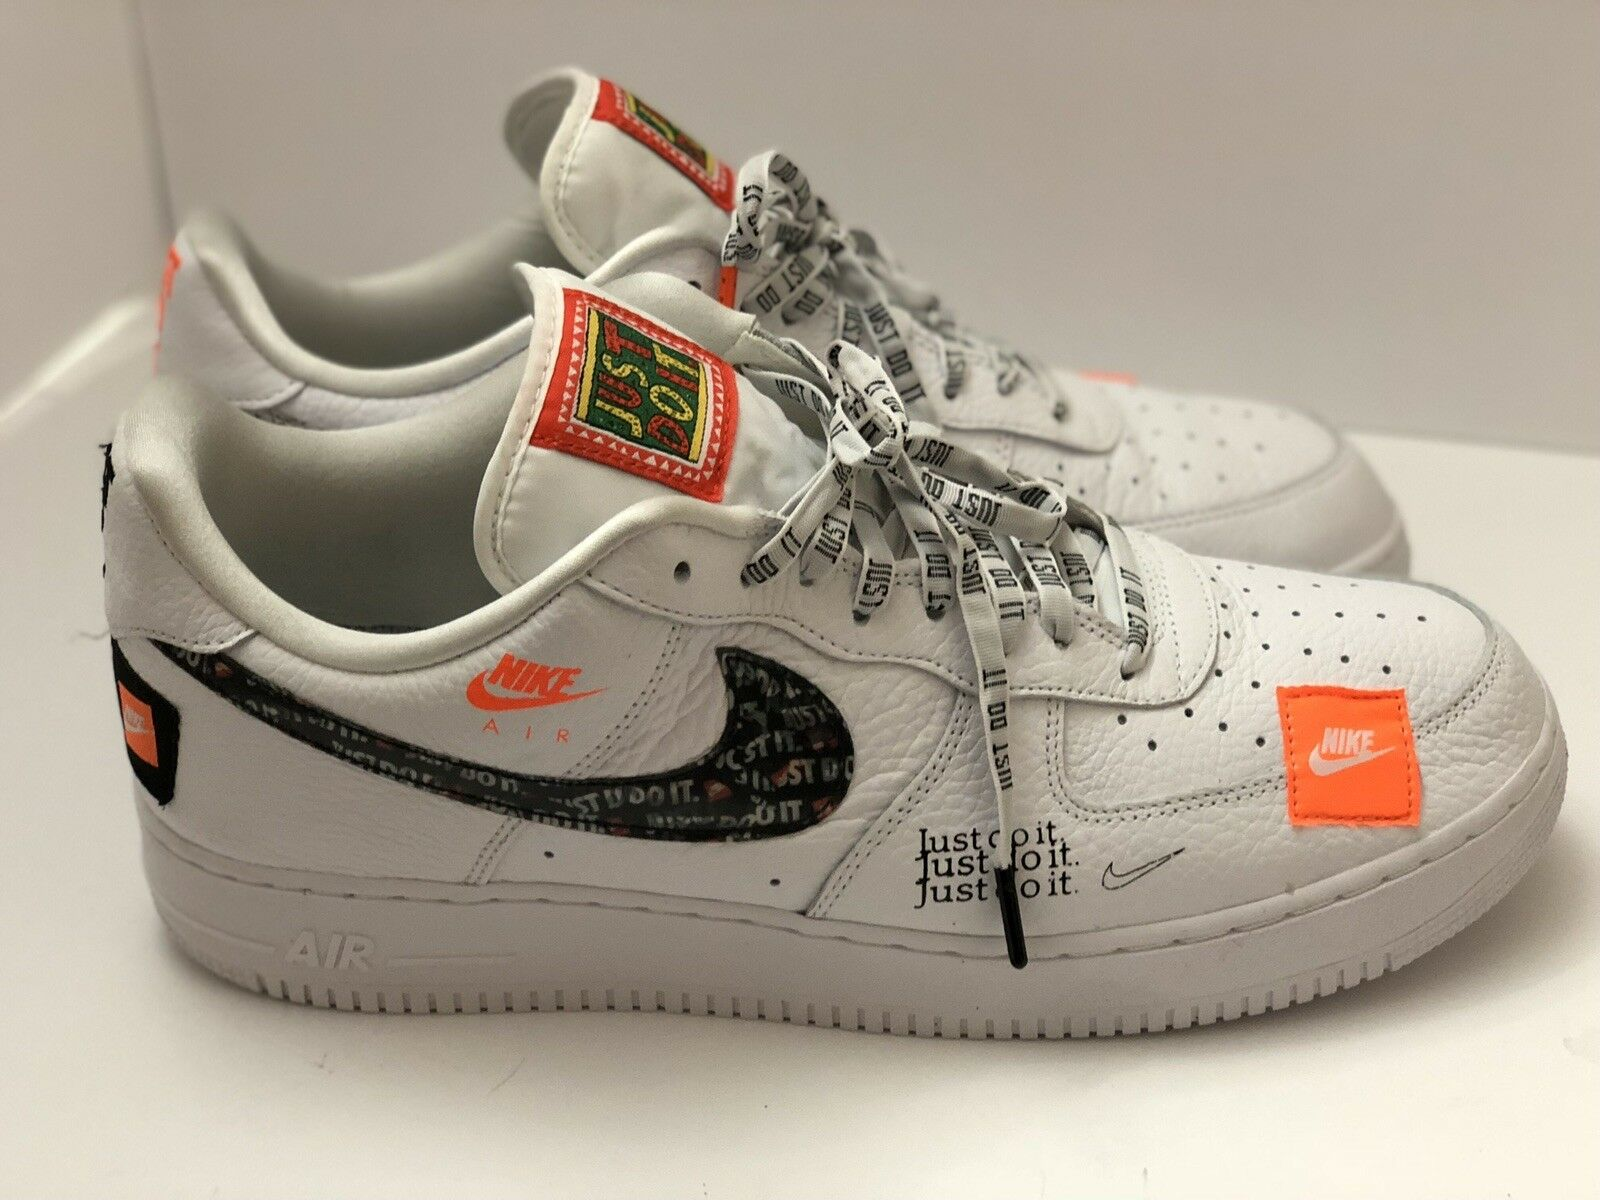 Nike Air Force 1 Premium JUST DO IT JDI x OFF WHITE Black Virgil Abloh Price reduction Special limited time